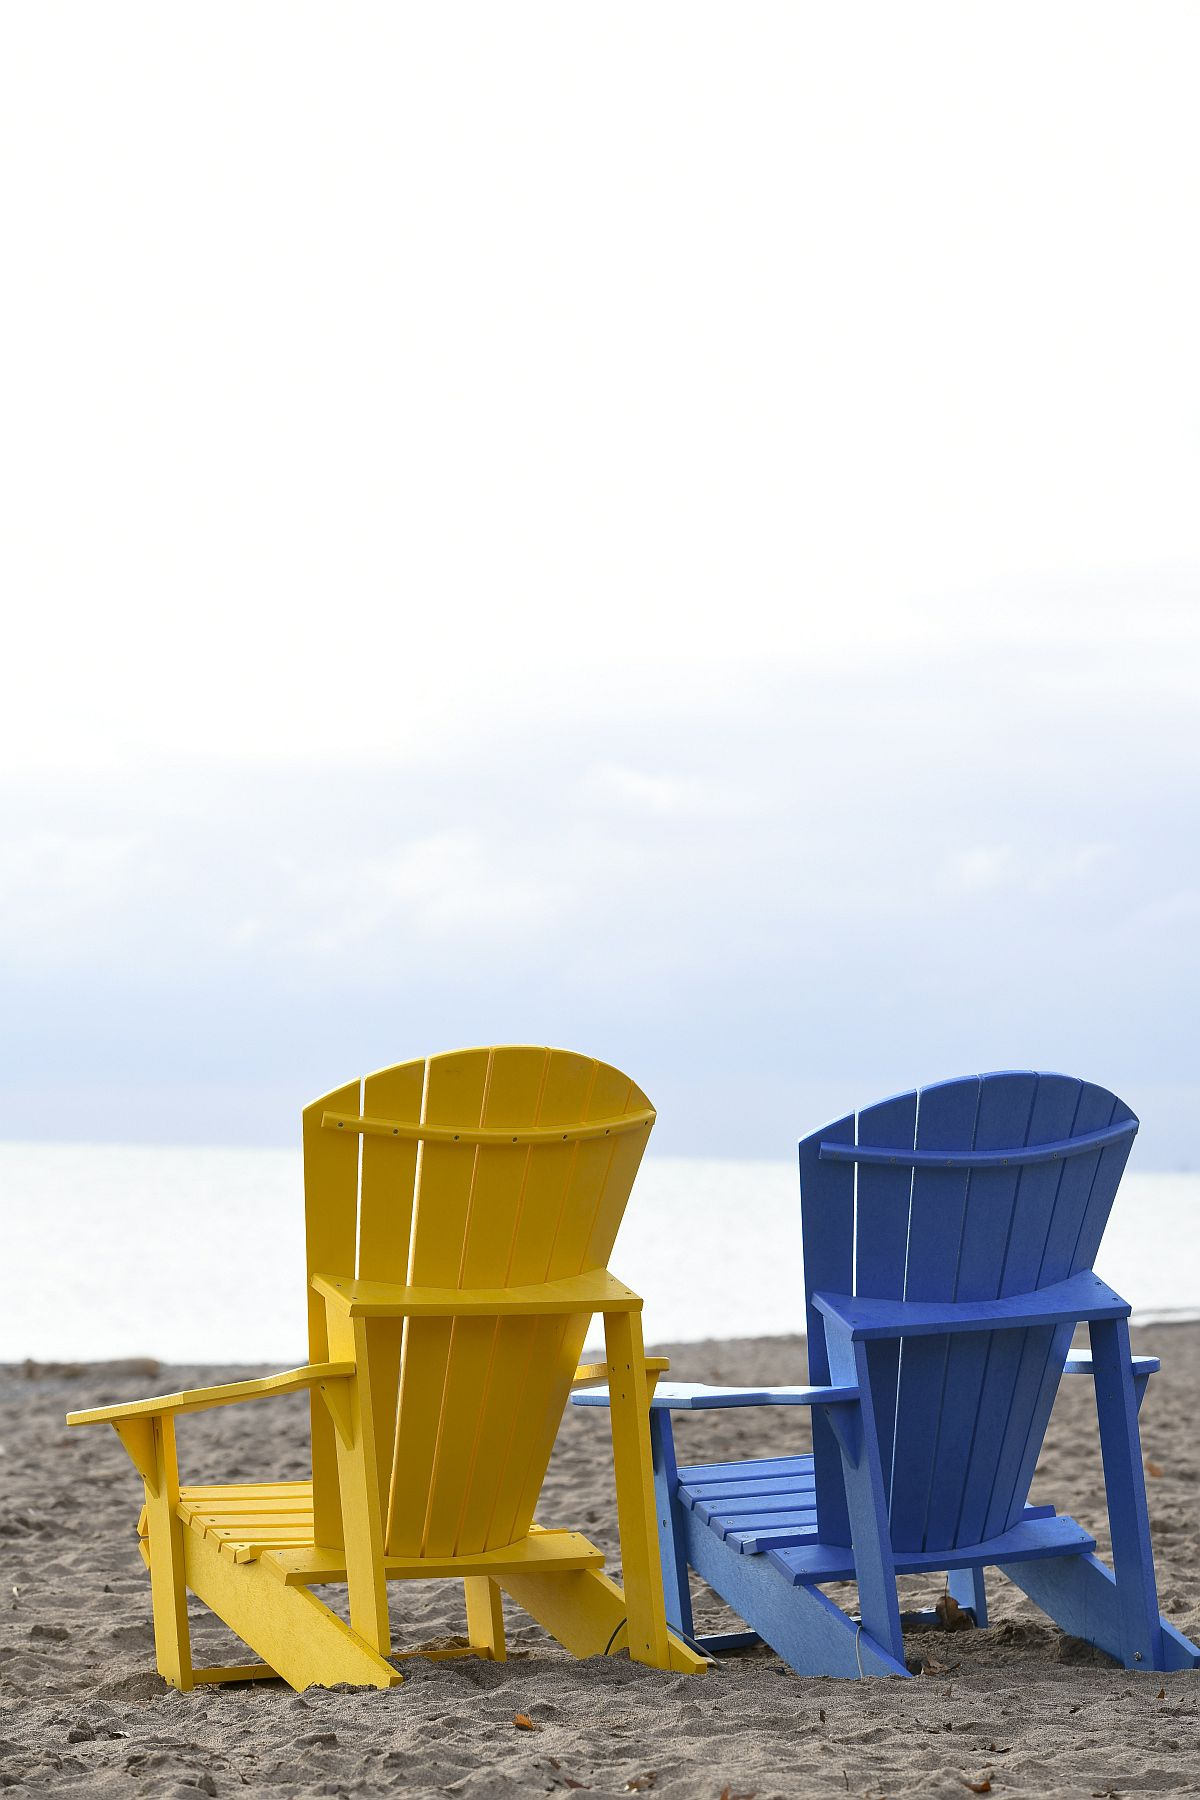 Colorful wooden chairs on the beach offer lovely views of the waves and beyond